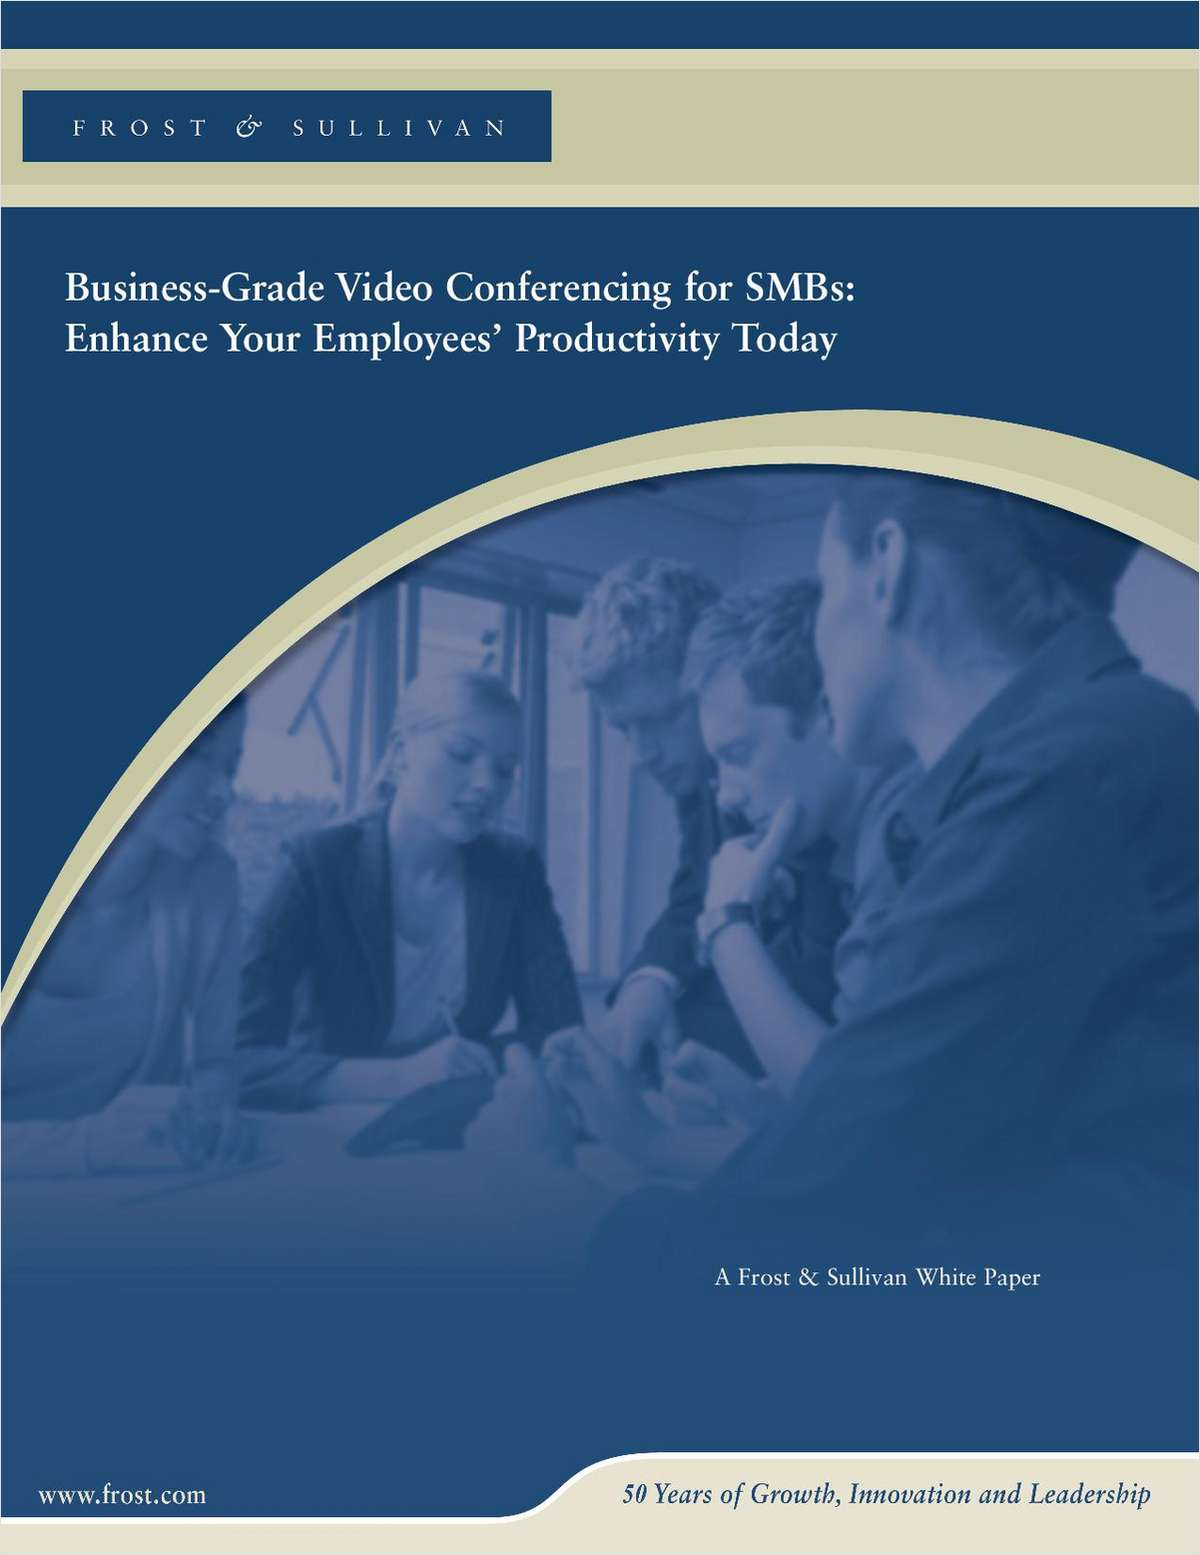 Business-Grade Video Conferencing for SMBs: Enhance Your Employees' Productivity Today